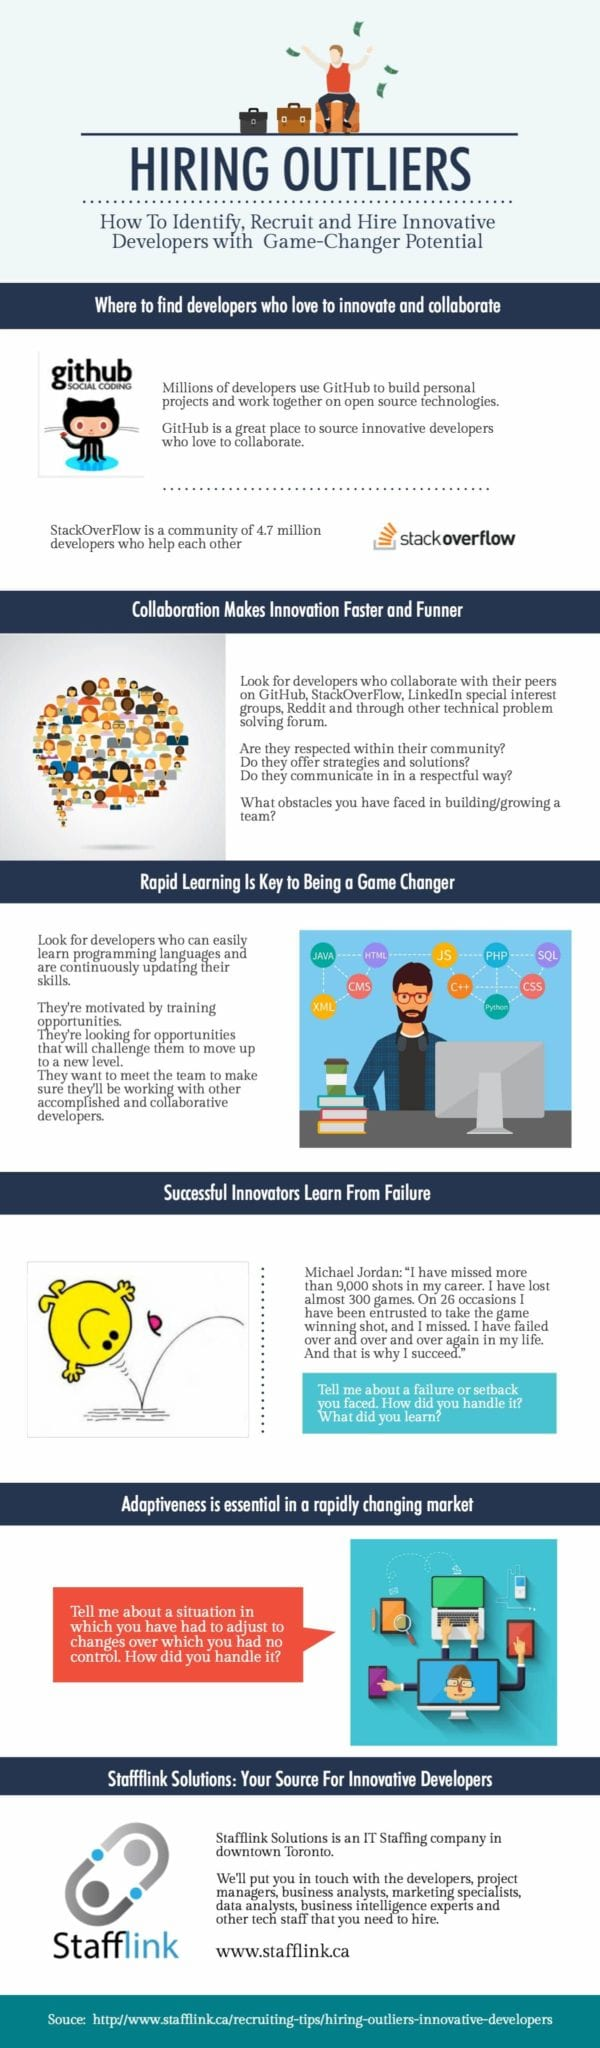 Infographic: Hiring Outliers — How to Identify, Recruit and Hire Innovative Developers with Game-Changer Potential